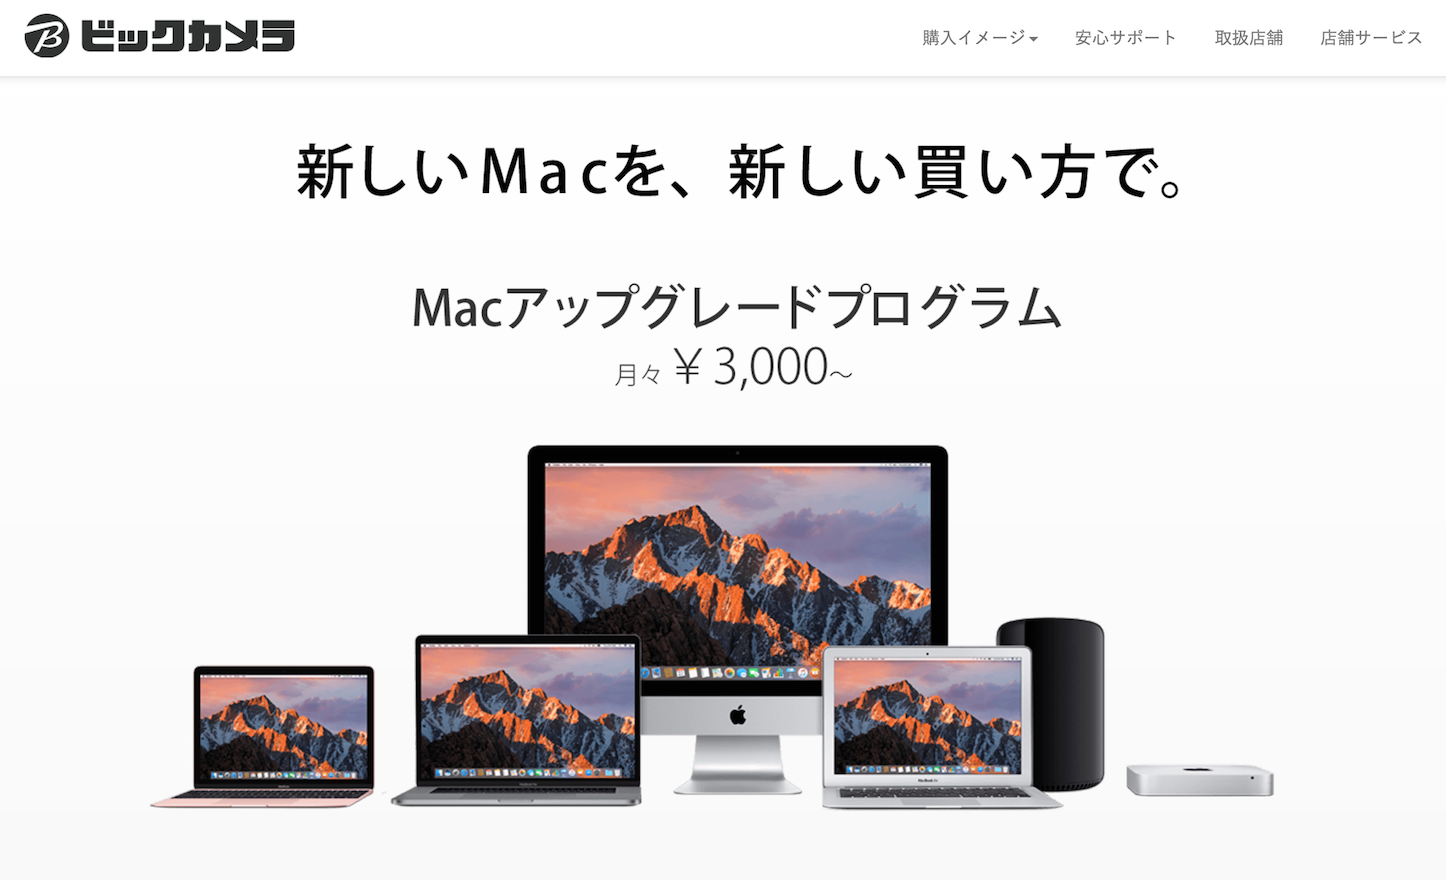 BigCamera Mac Upgrade Program